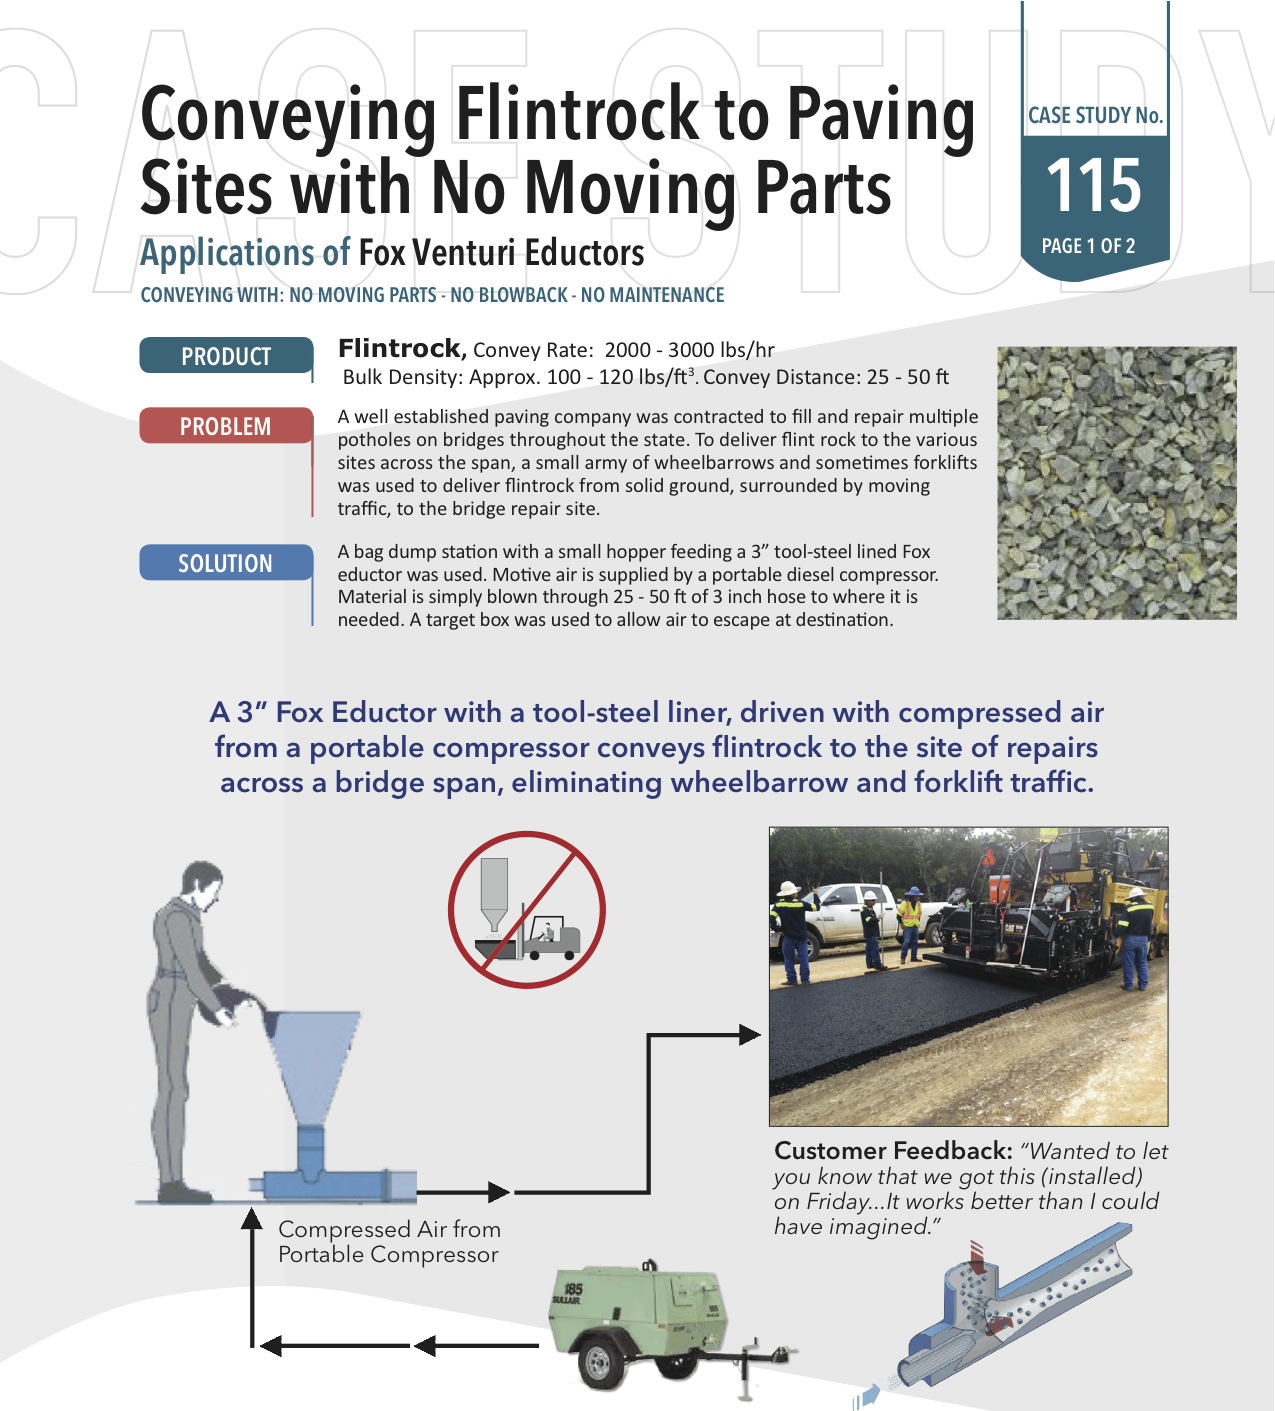 Conveying Flinkrock to paving sites with no moving parts - Applications of Fox Venturi Eductors